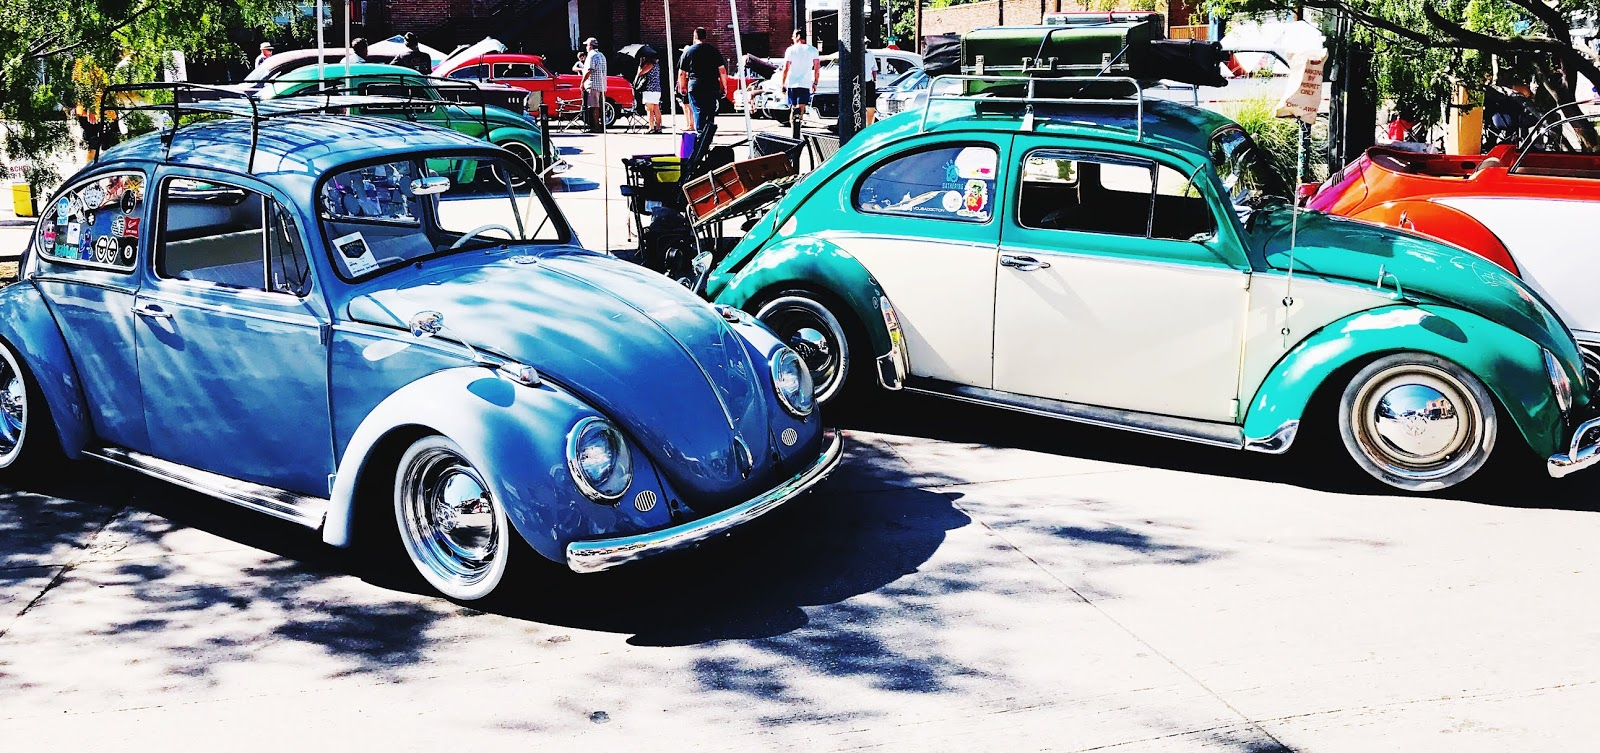 Car Shows In The City With My Mama And Sisters